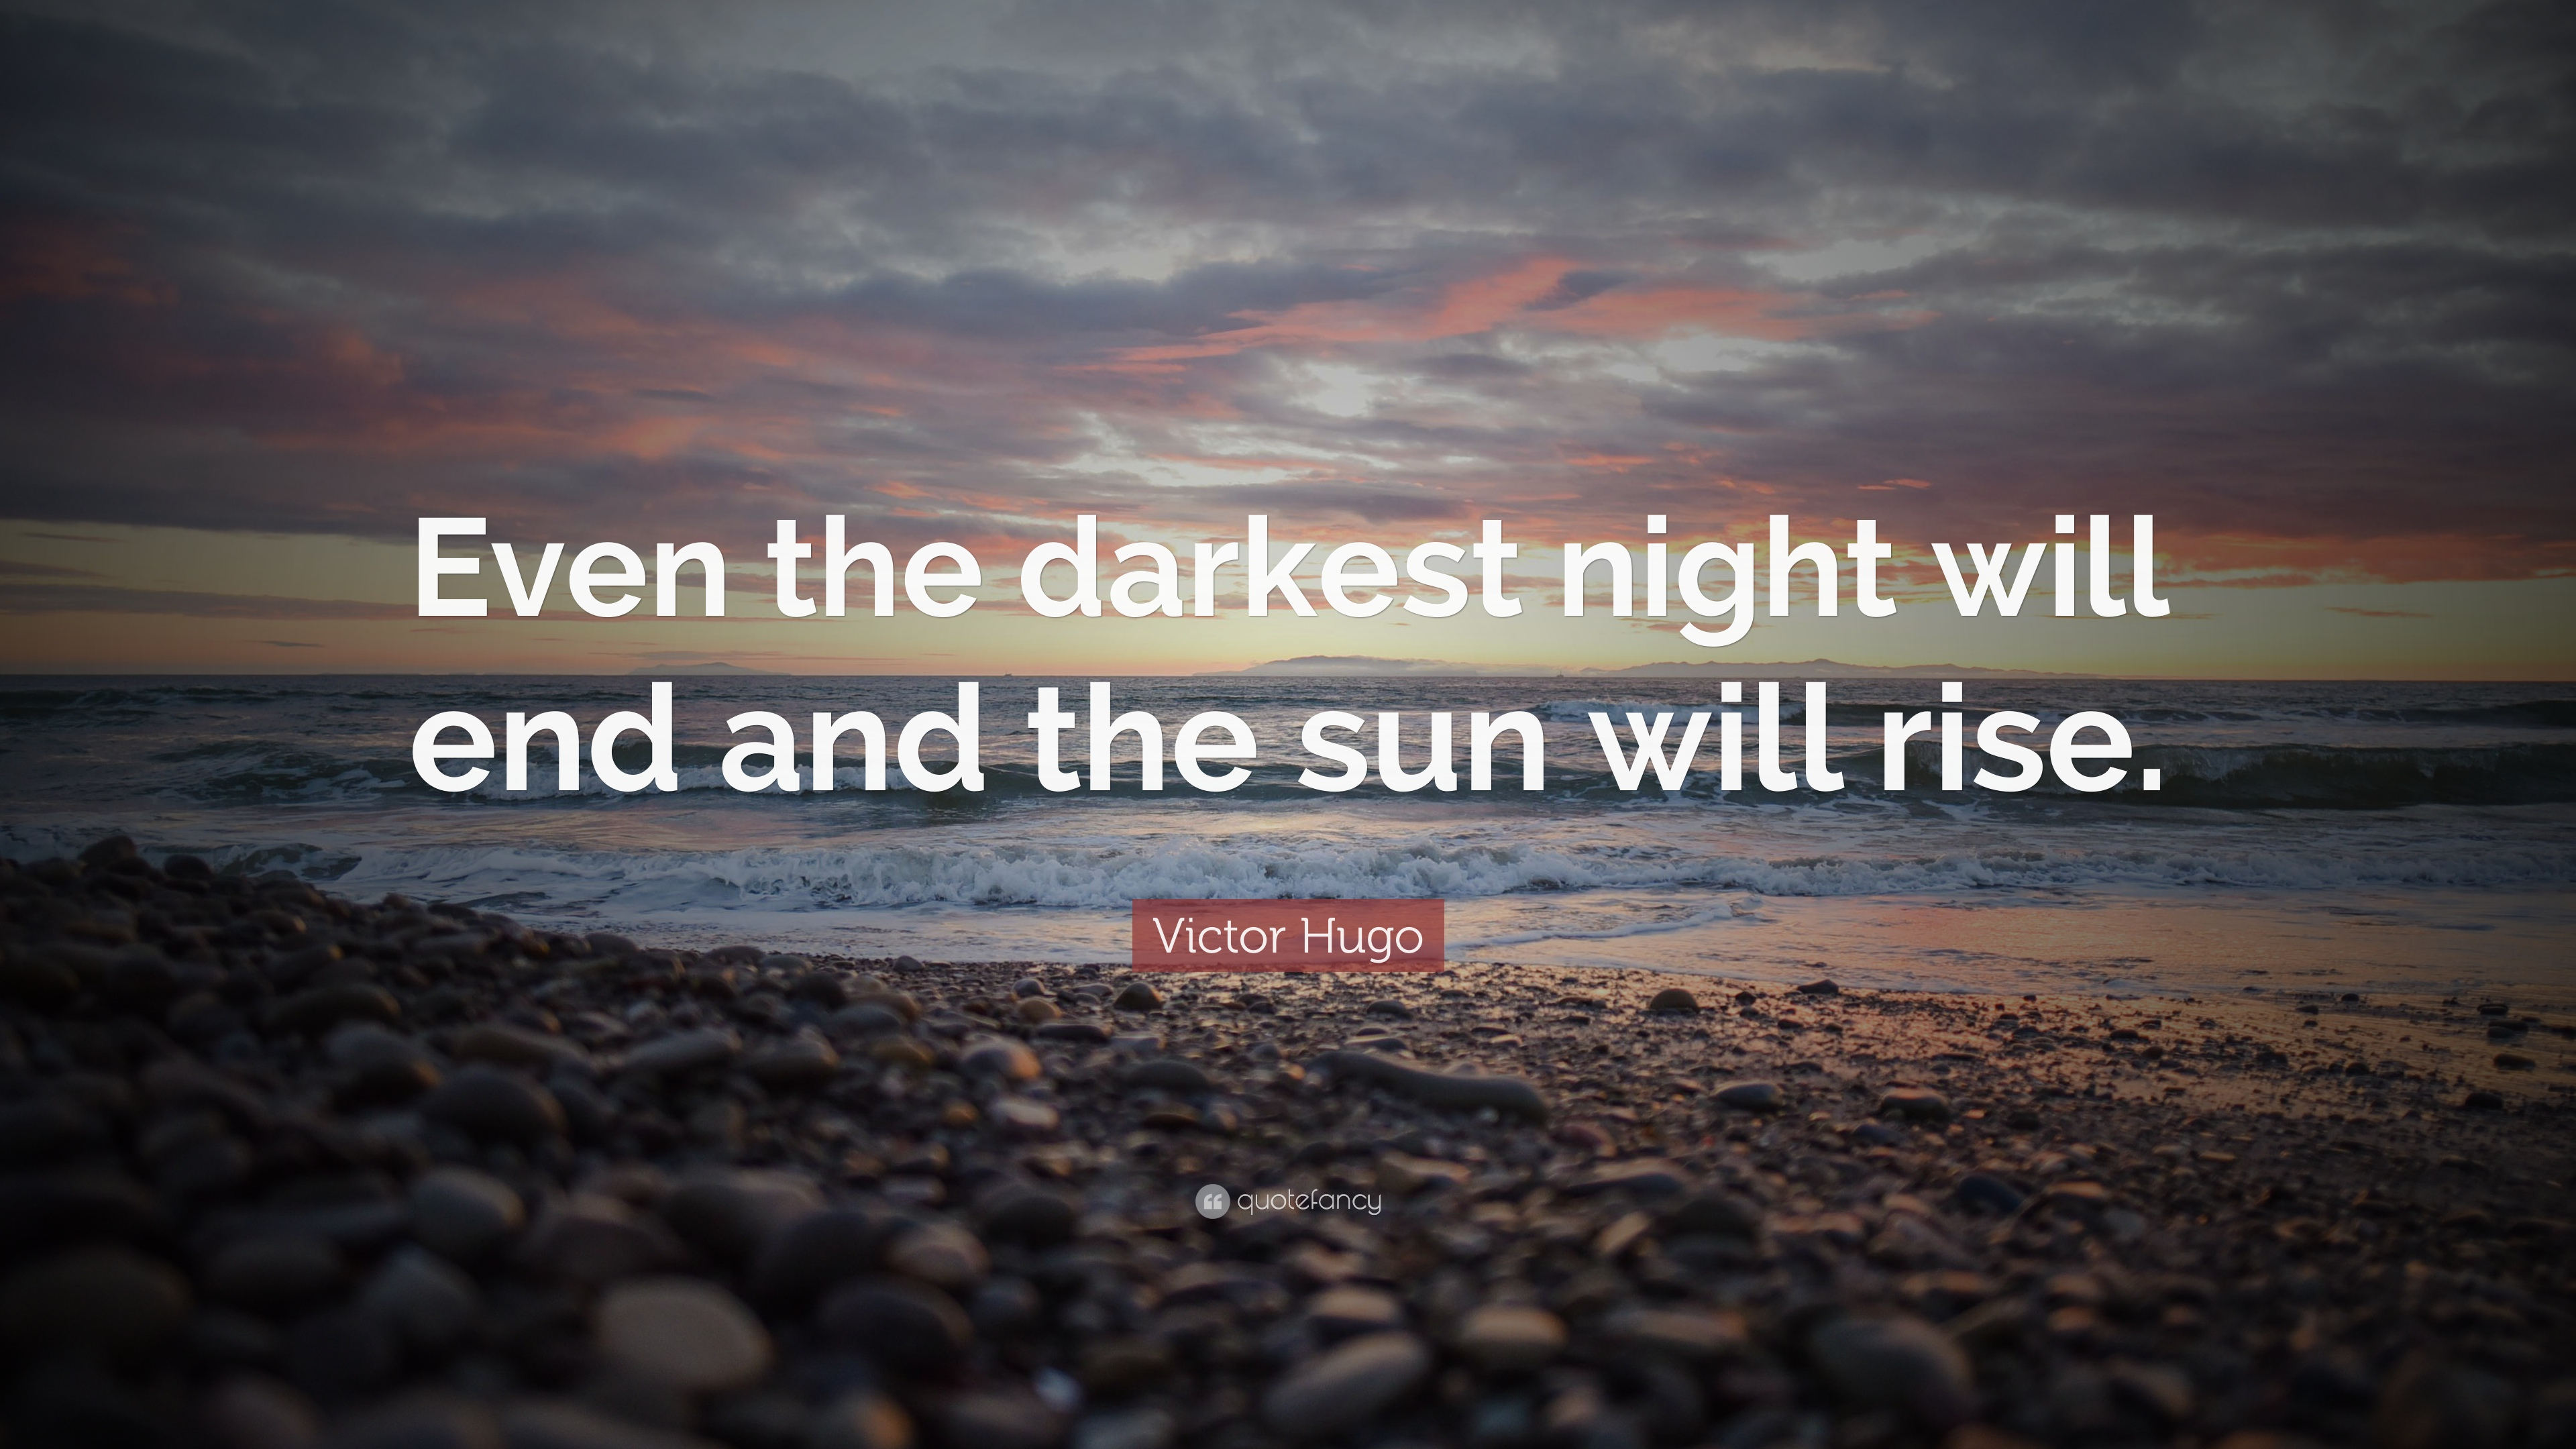 John Lennon Quotes Wallpaper Victor Hugo Quote Even The Darkest Night Will End And